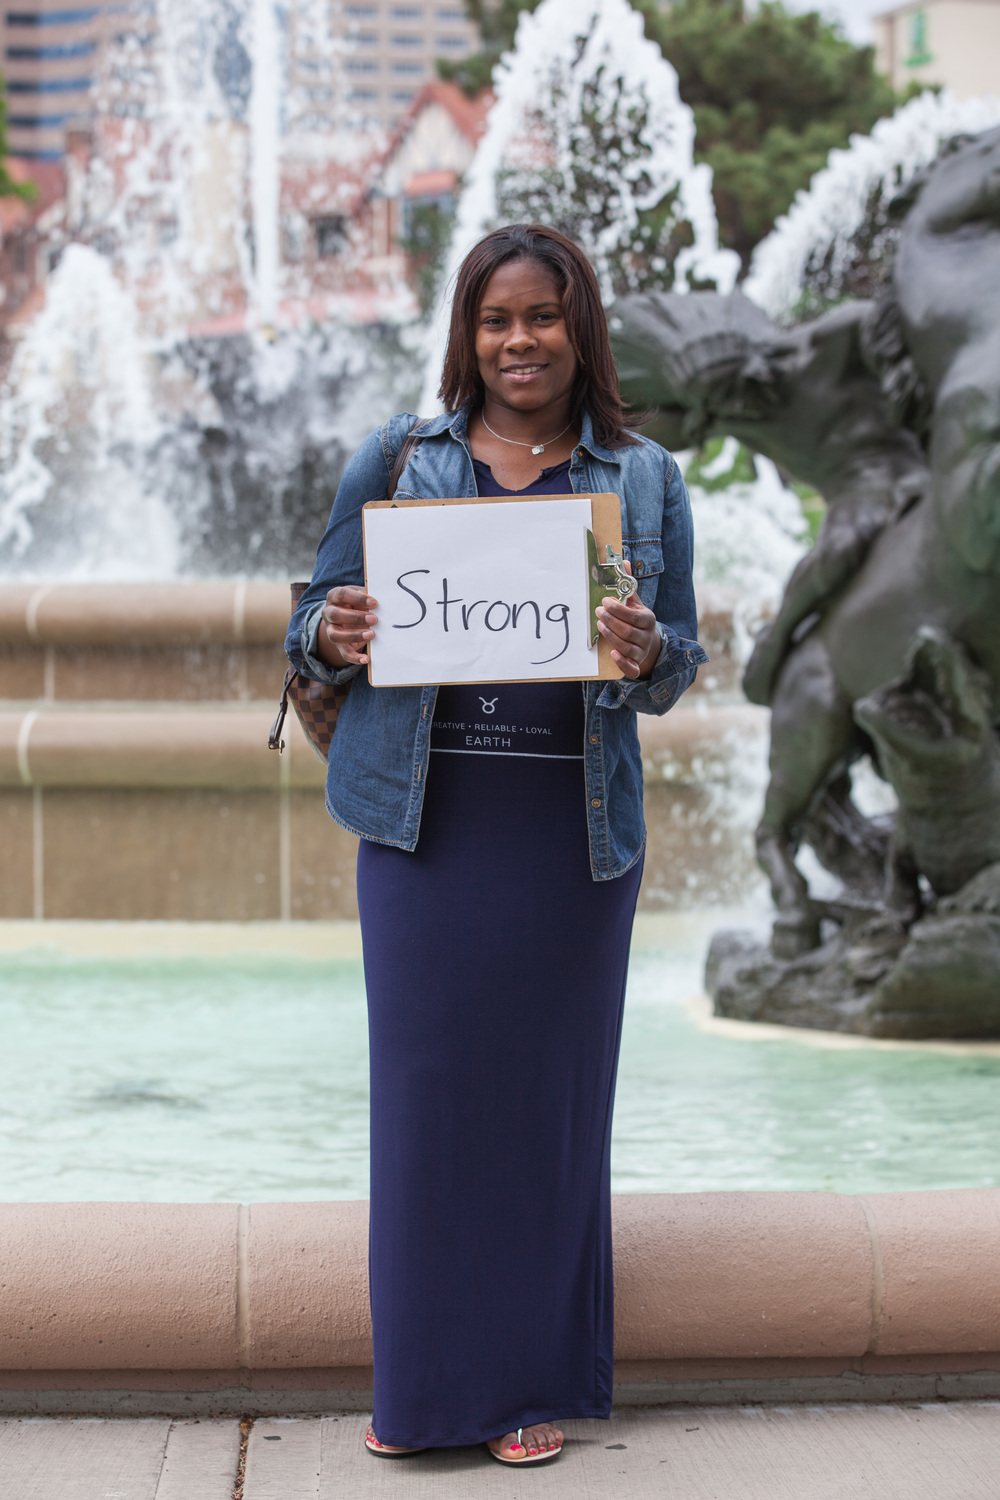 Woman holding a sign saying strong while standing next to a fountain.